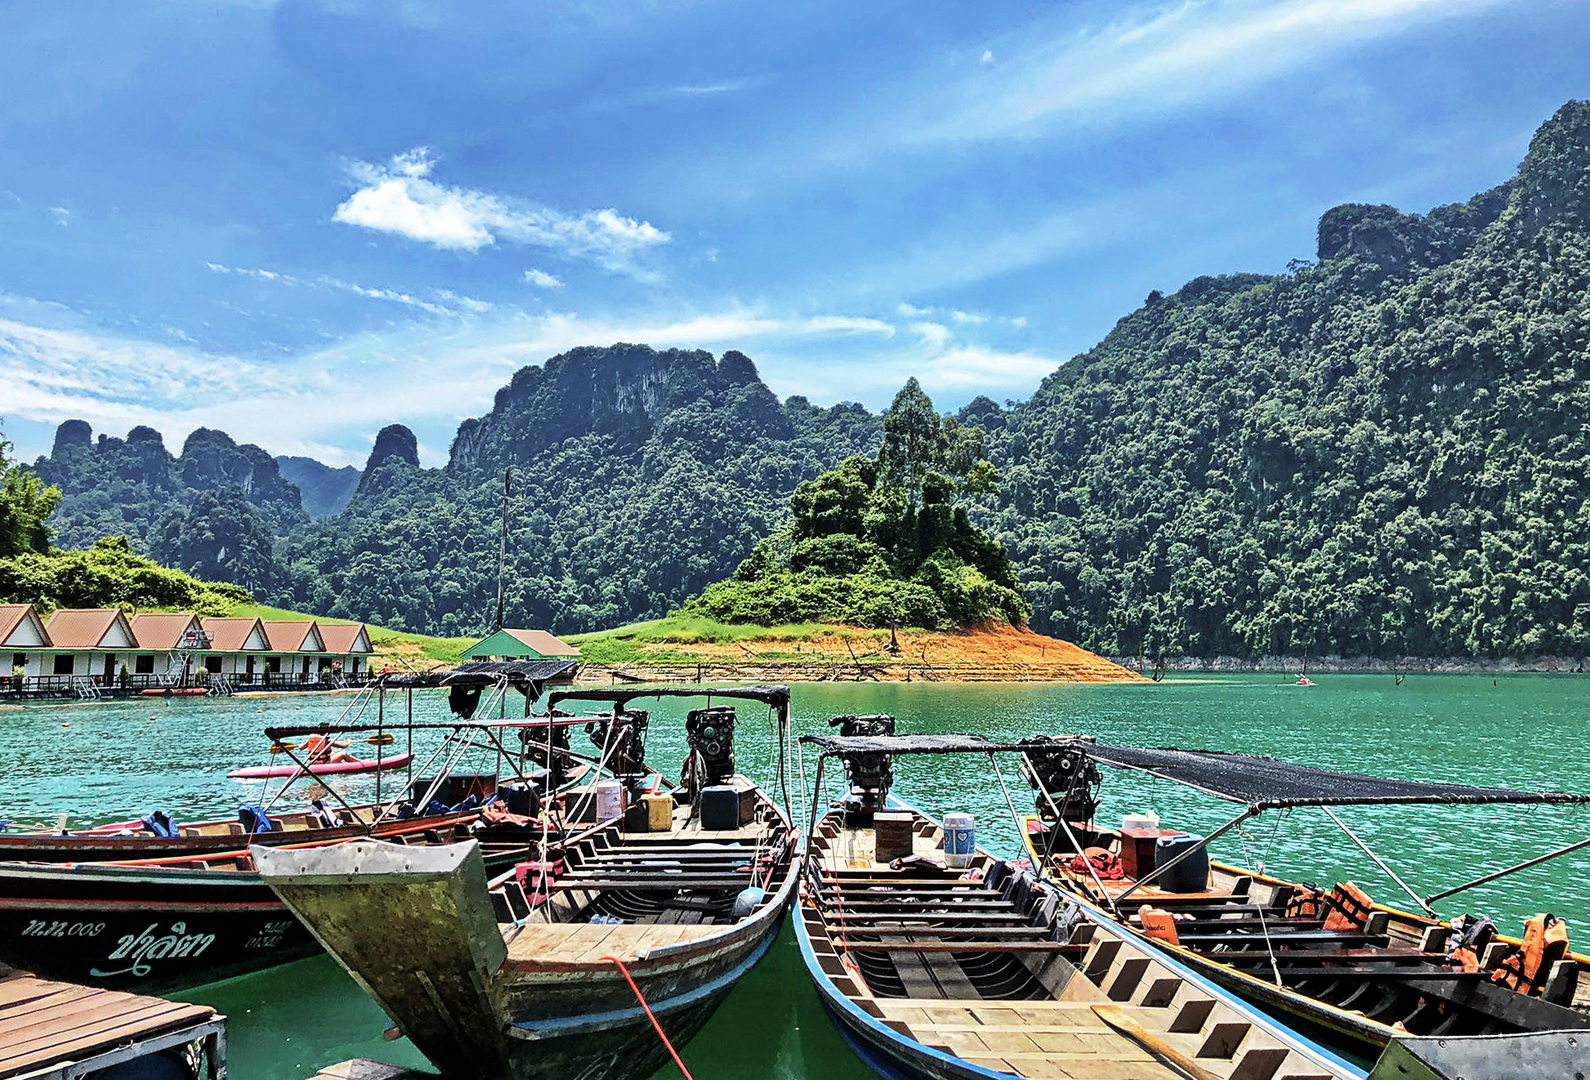 Thailand, boats on Cheow Lan Lake